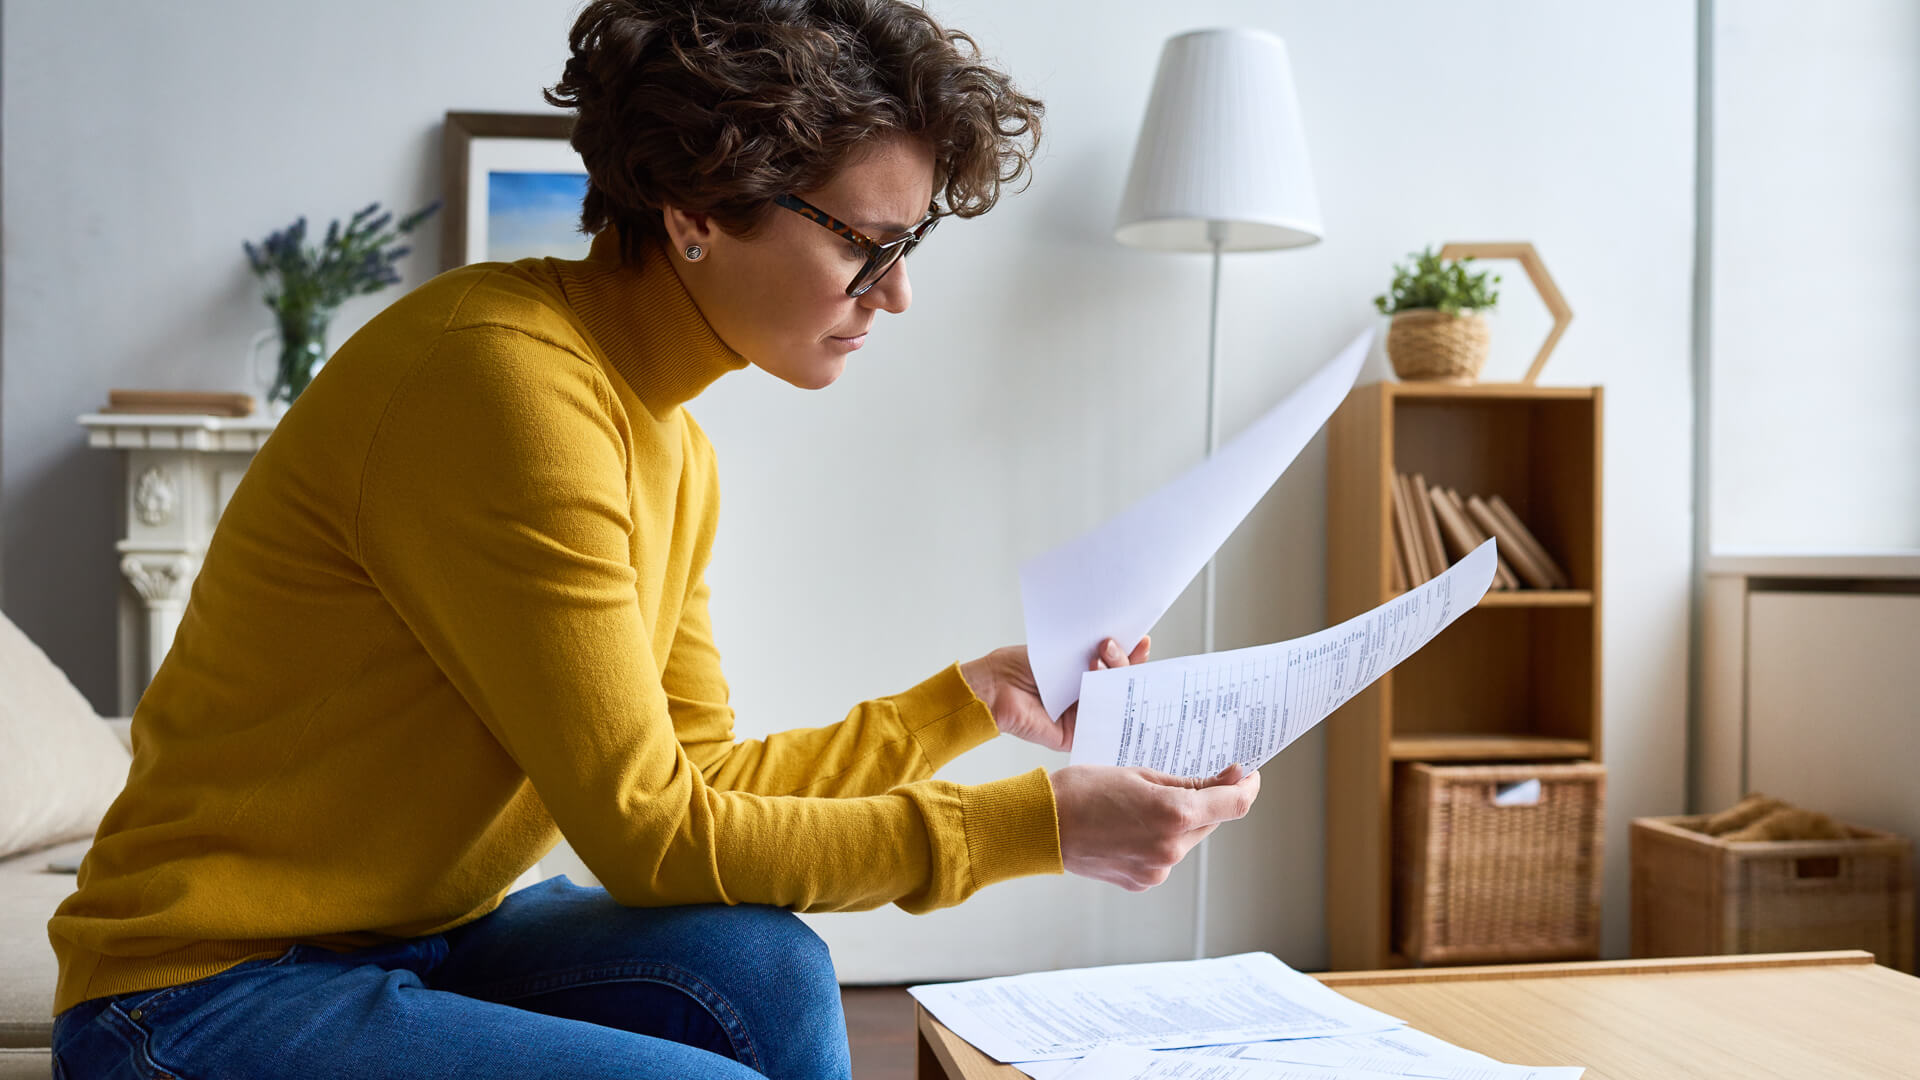 Concentrated woman reviewing financial documents at home.